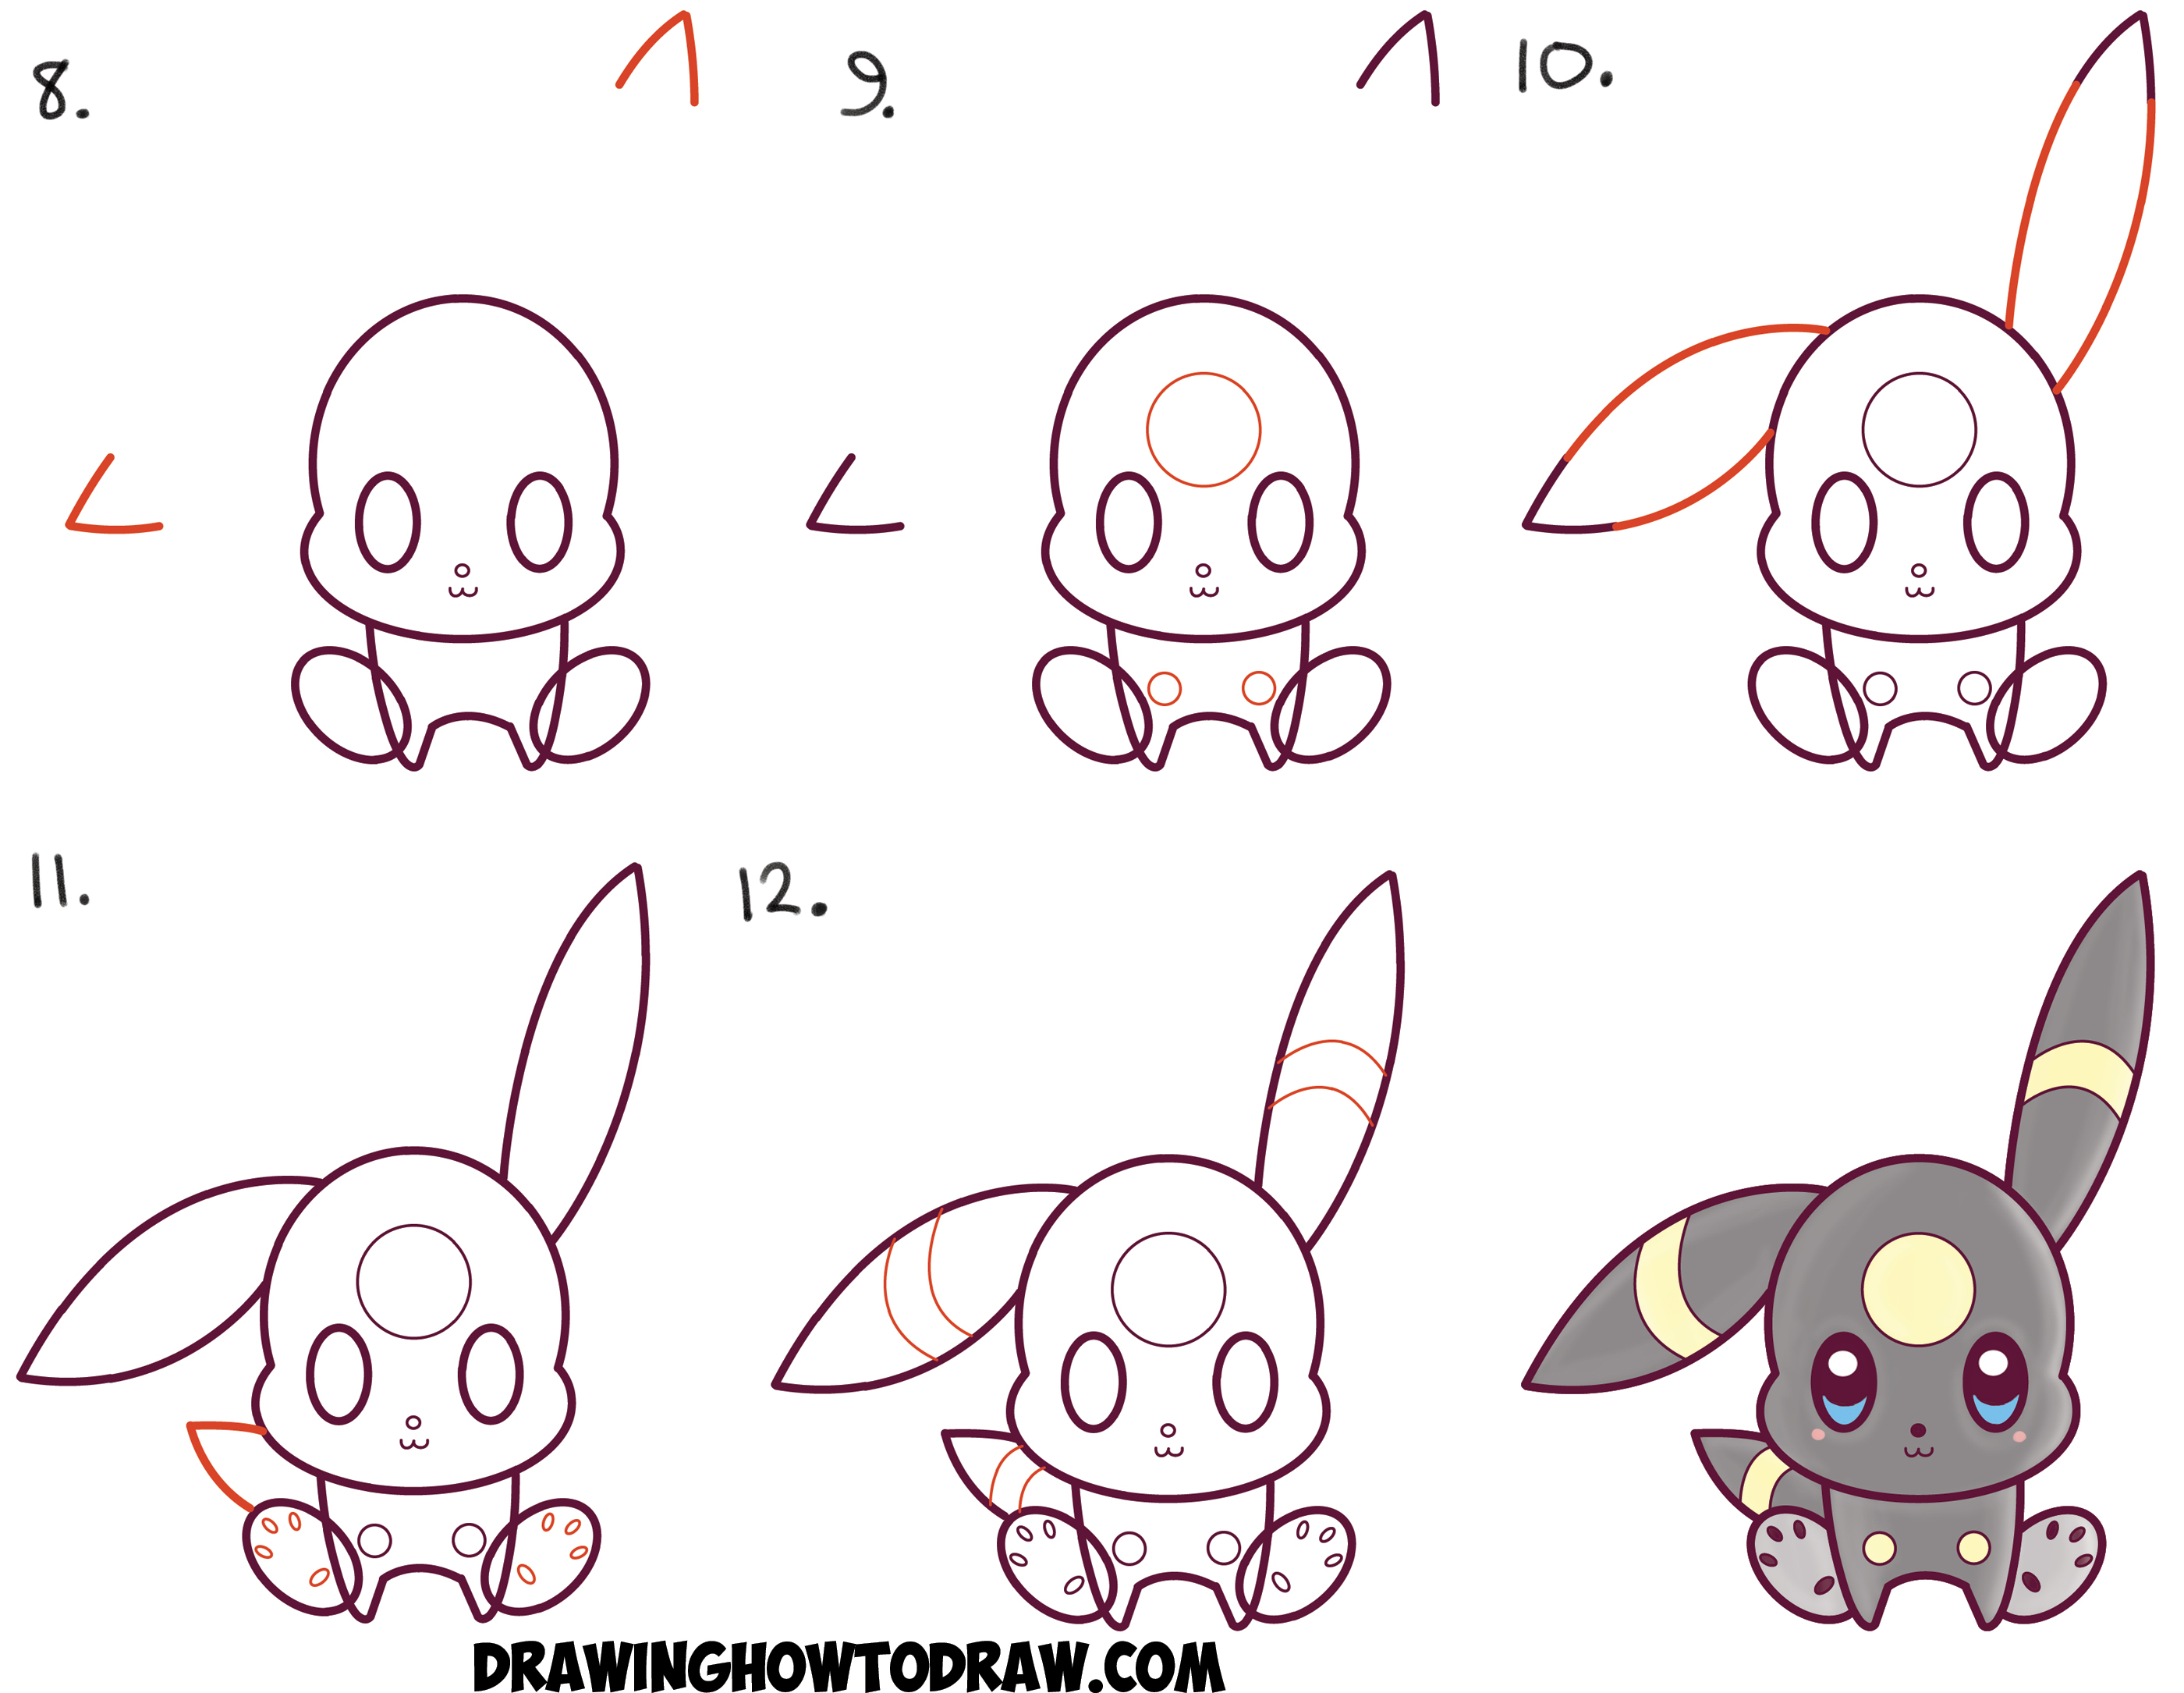 2800x2170 Drawing Instructions Step By Step How To Draw Cute Kawaii Chibi